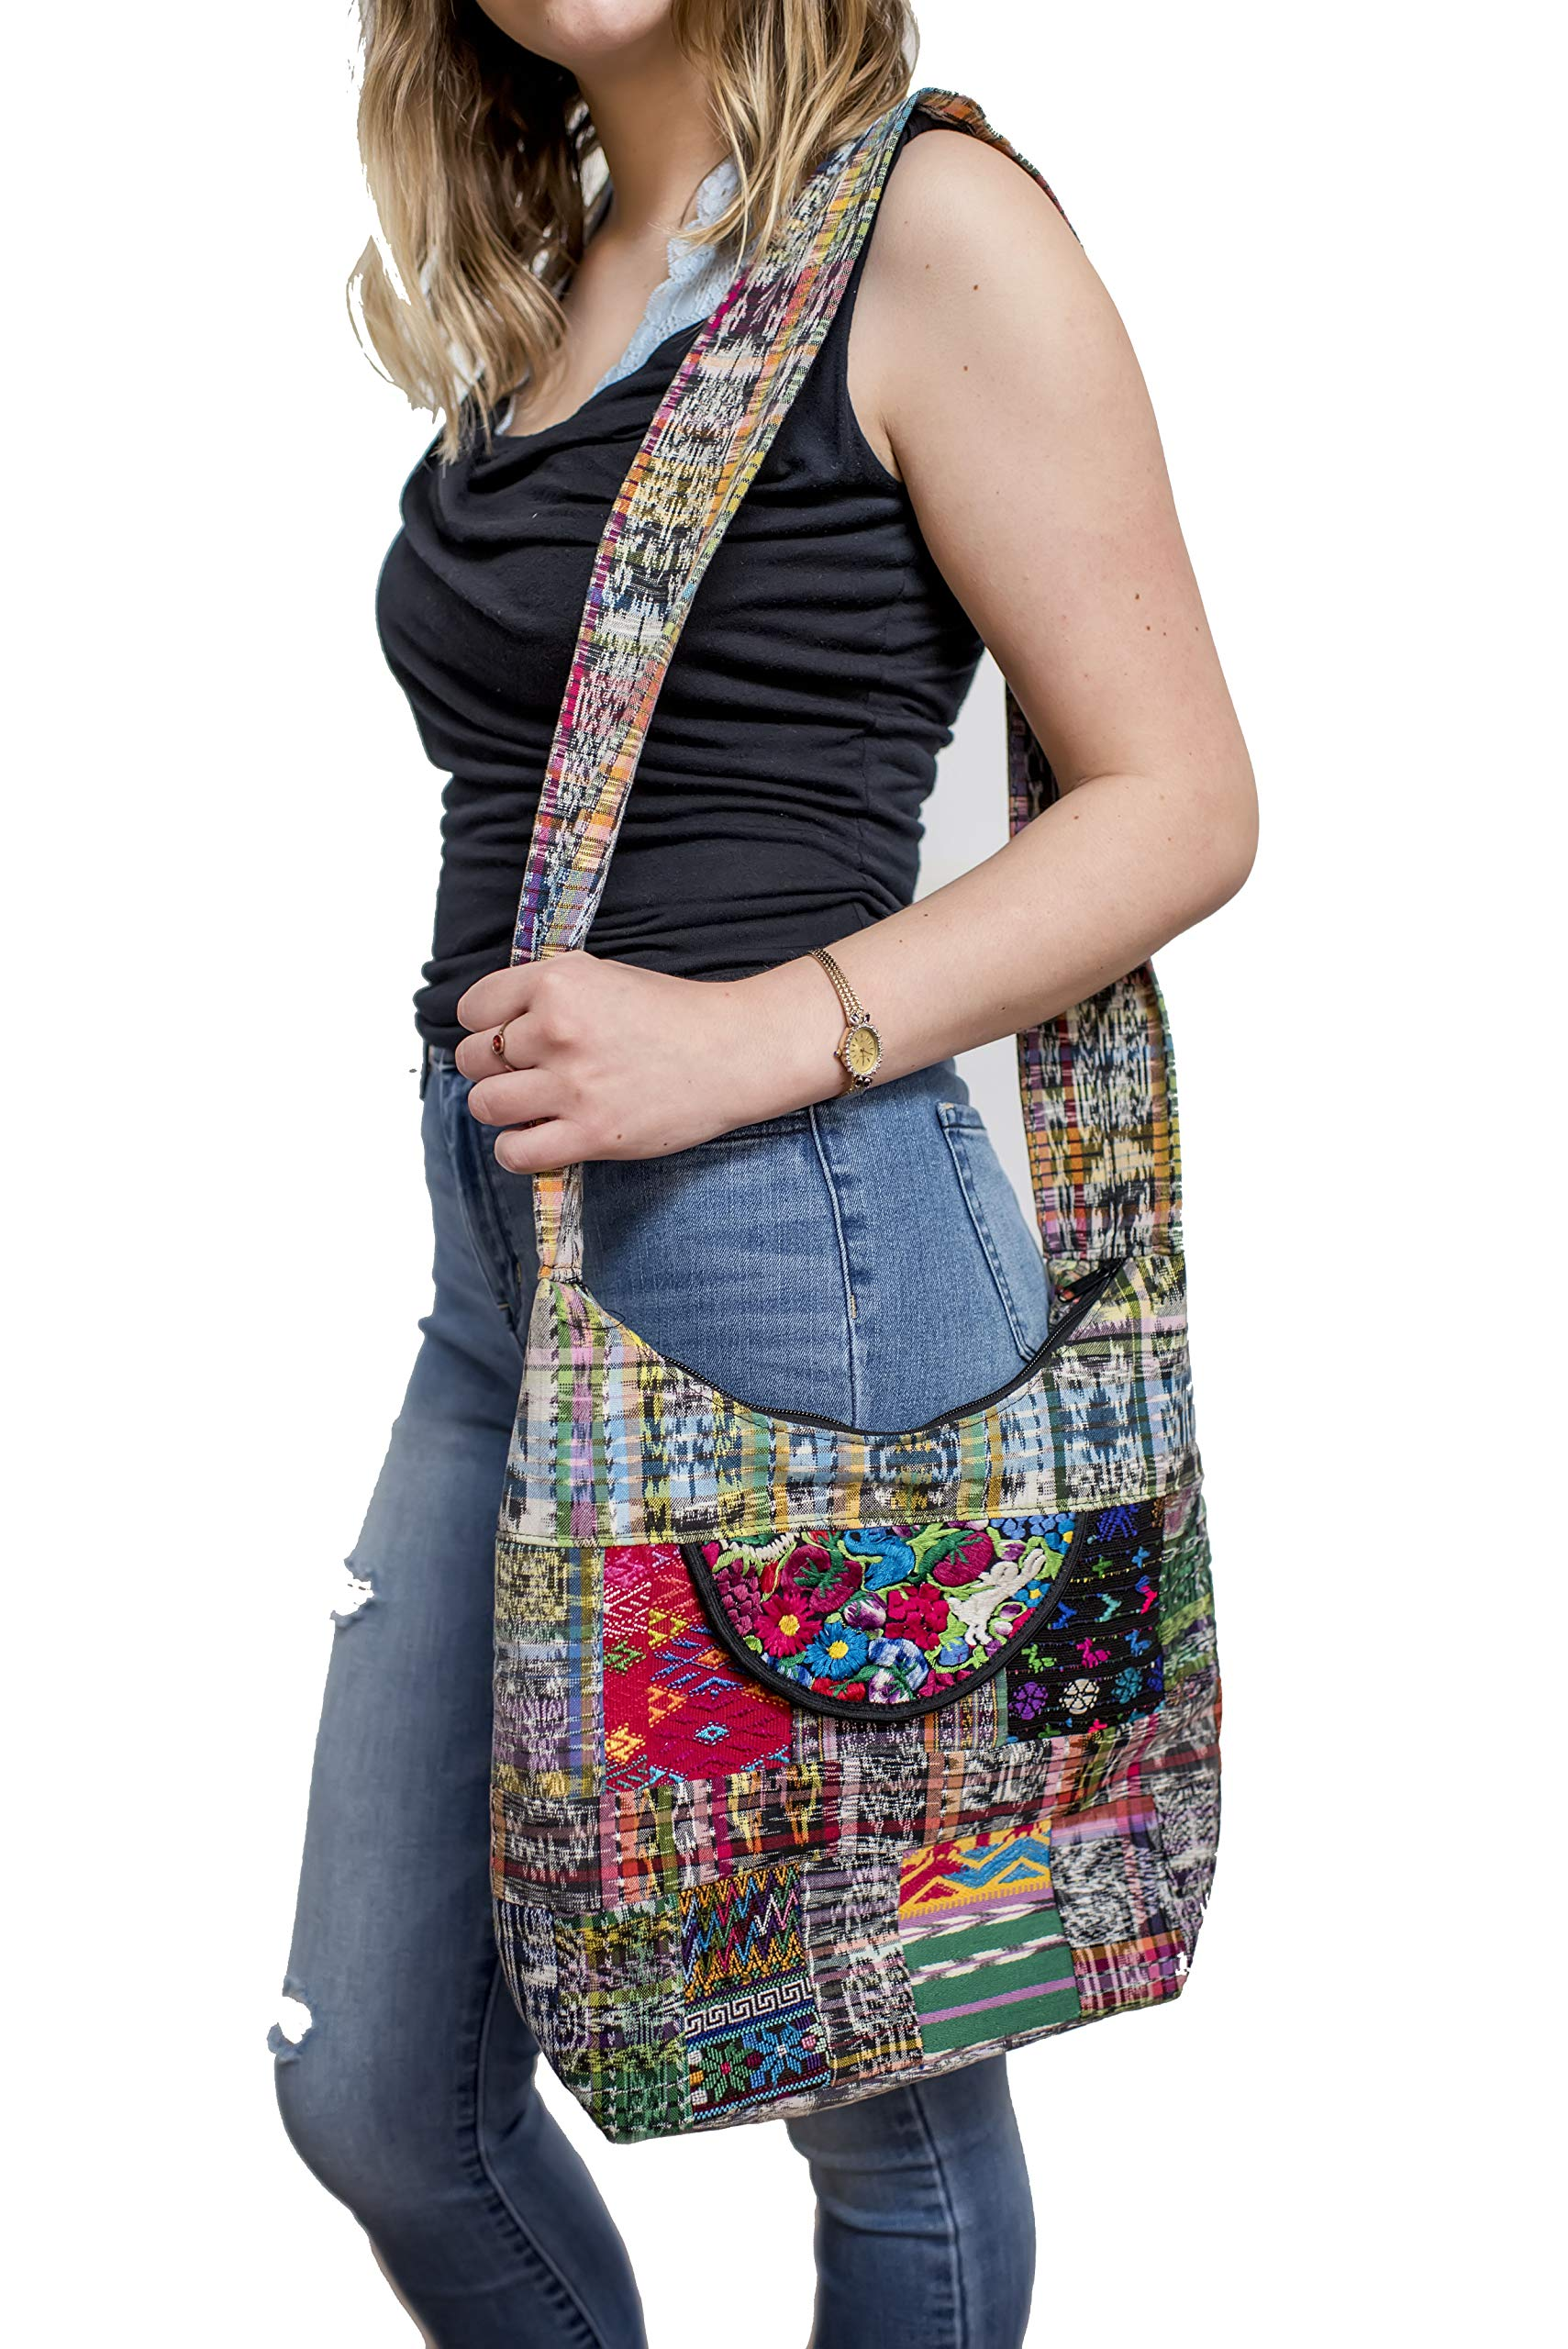 Boho Sling Embroided Hippie Bag Patchwork Hobo Quilted Crossbody Handbags Colorful Unique Purse Women Gift Long Strap Gym Travel Spacious